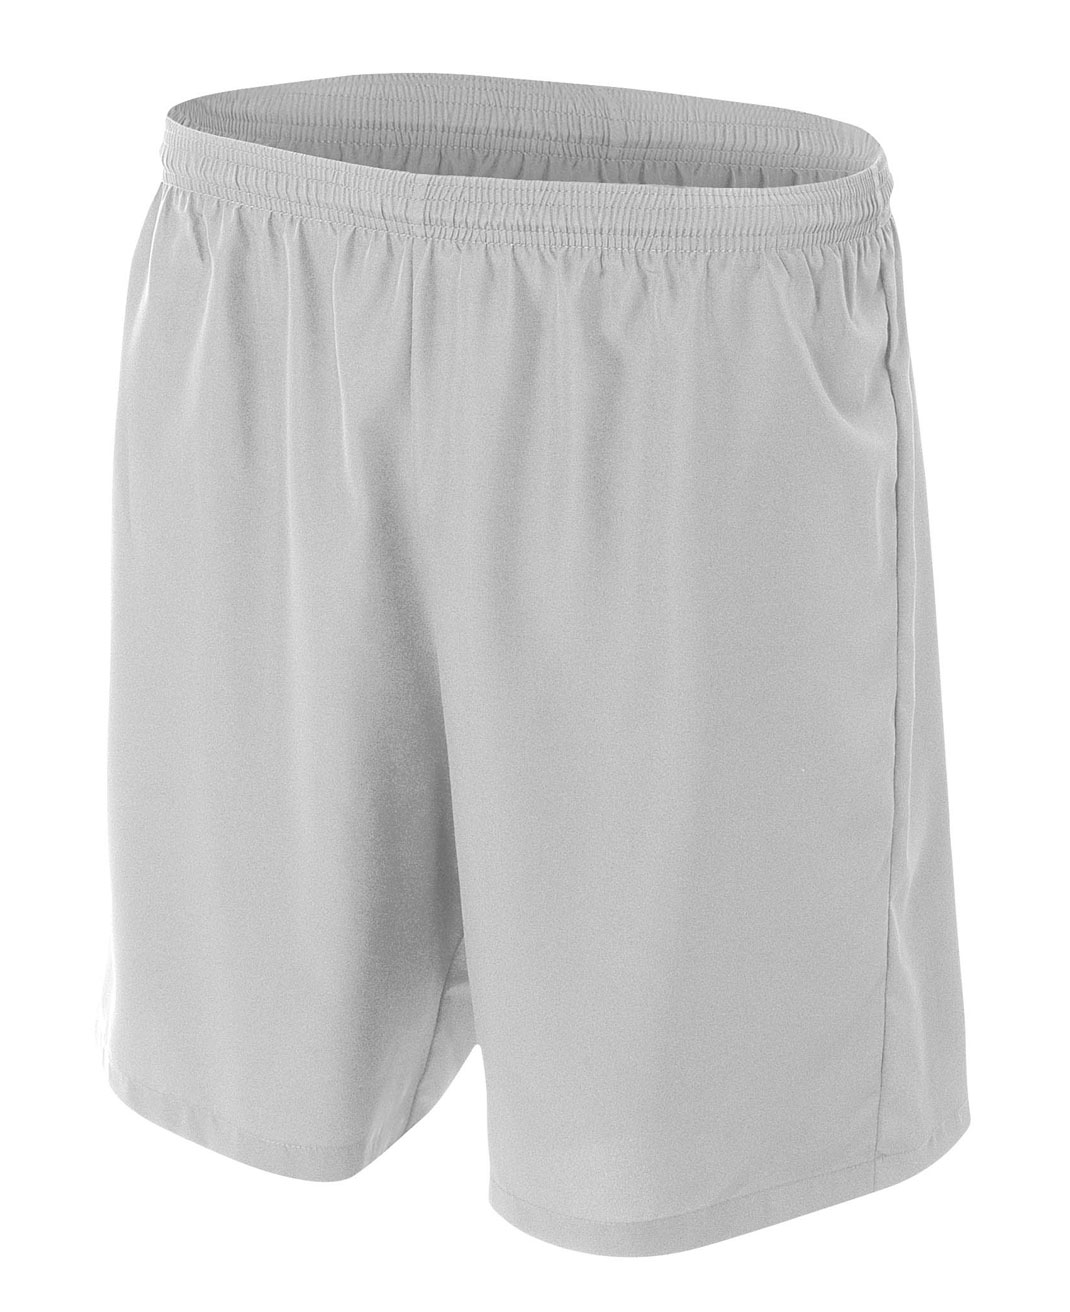 A4 Youth Woven Soccer Short